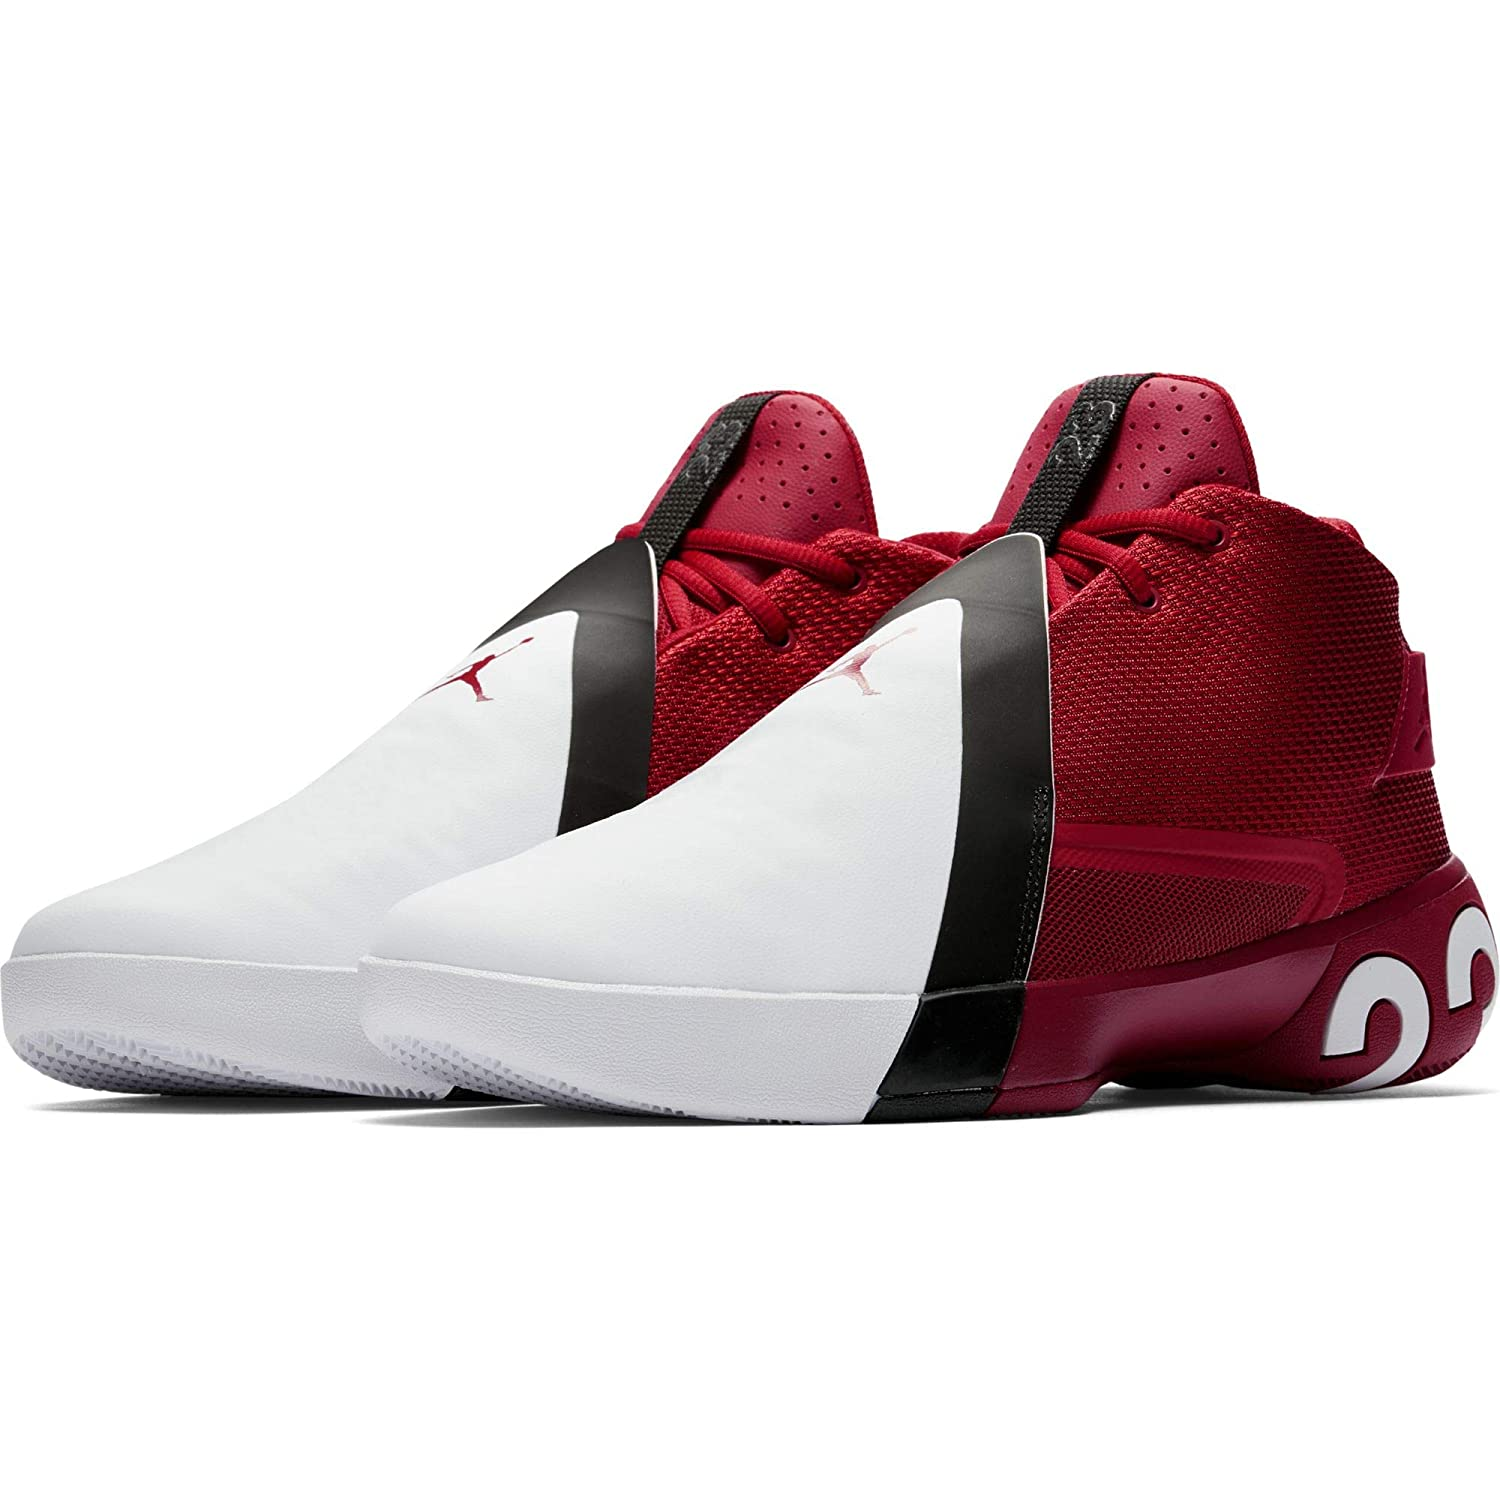 ee3455ac3ab Jordan Men's Ultra Fly 3 Basketball Shoes: Buy Online at Low Prices in  India - Amazon.in